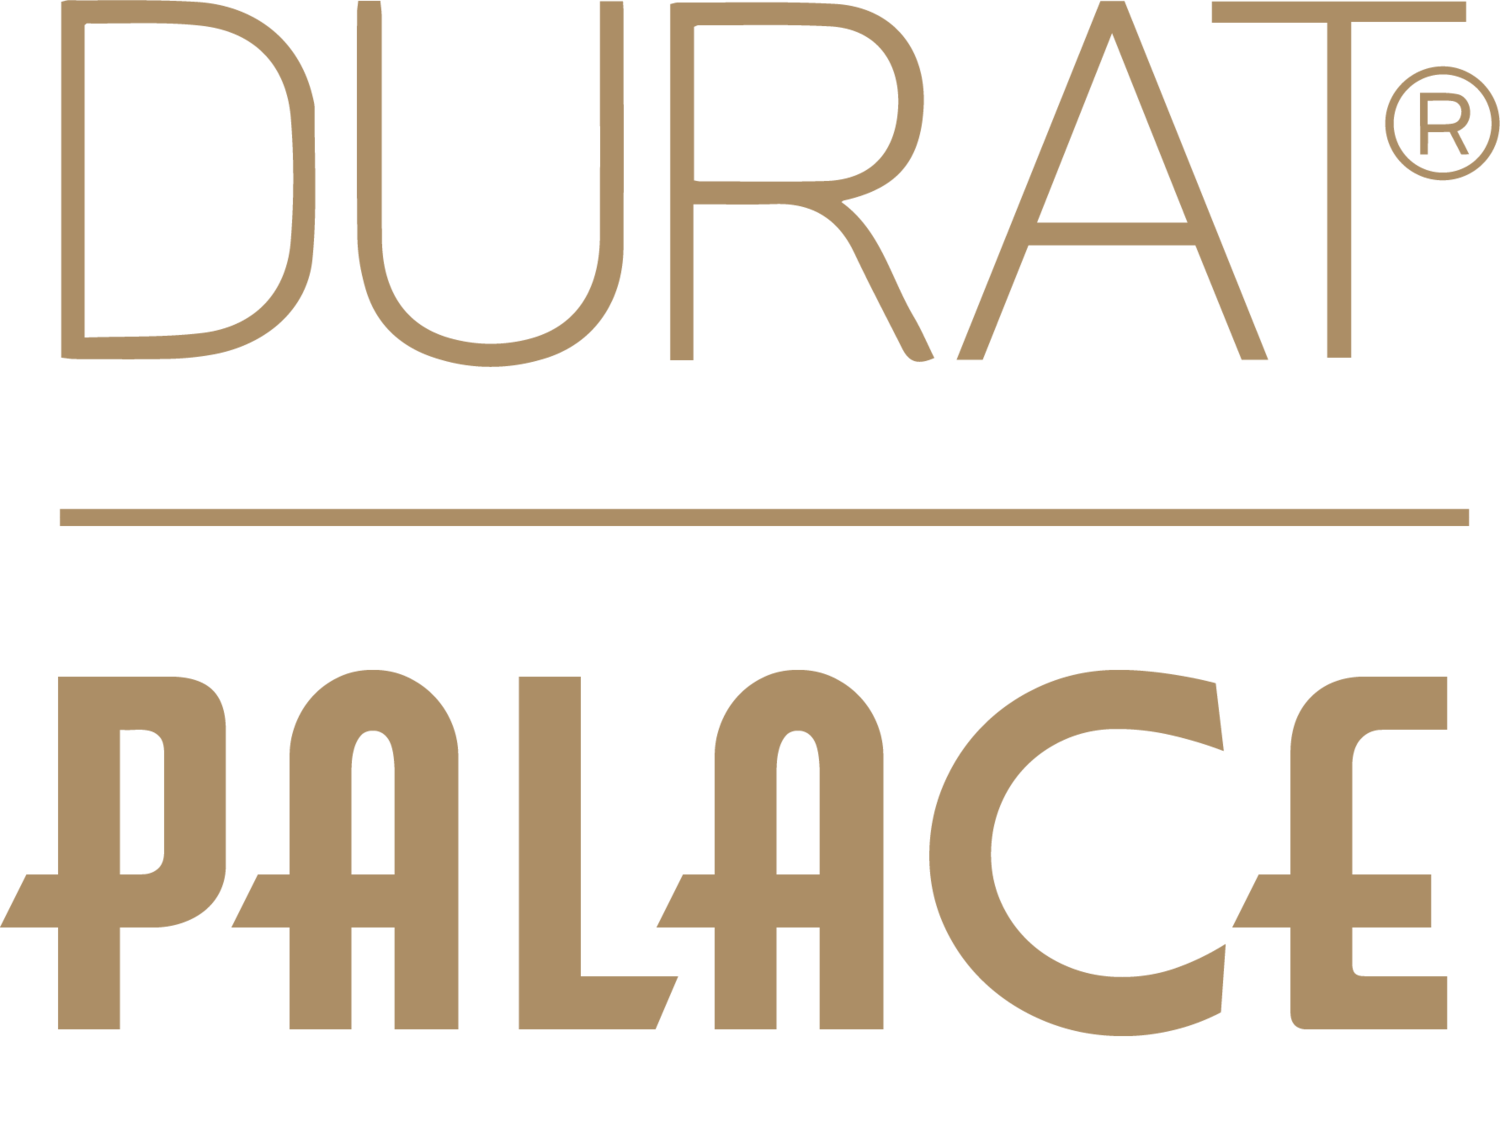 The Palace Collection by DURAT